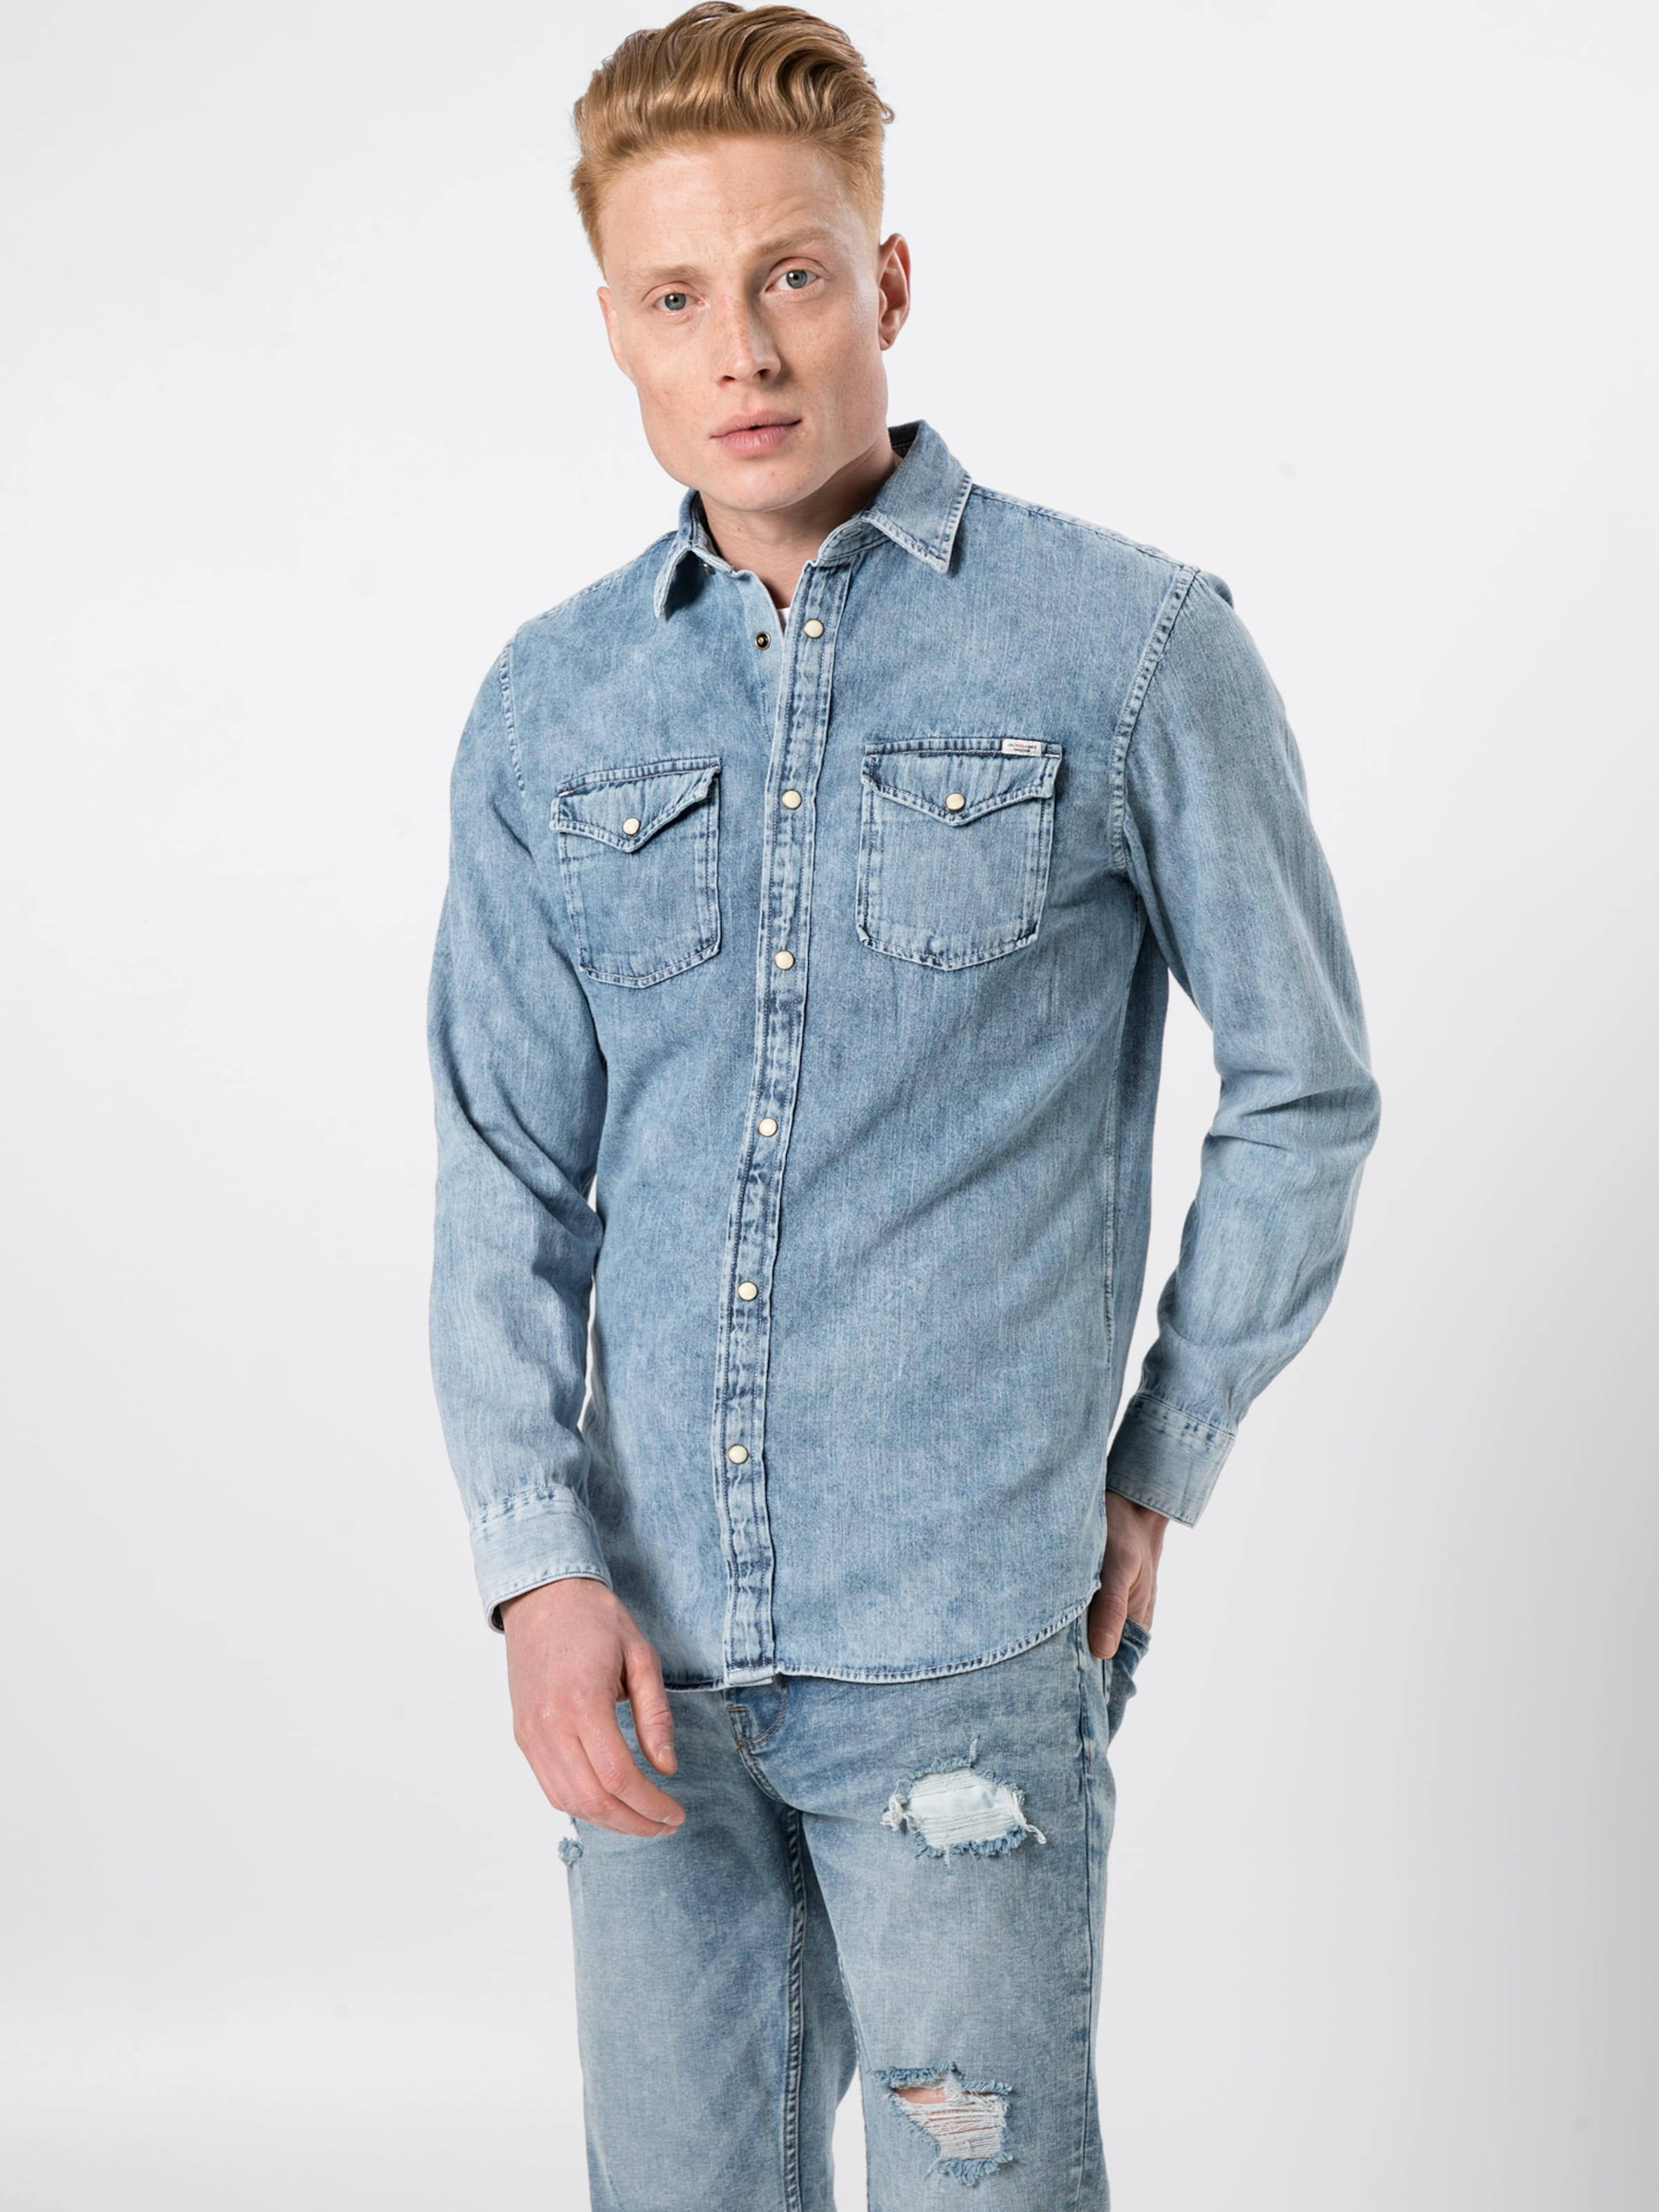 Denim s' Chemise Jones 'jjesheridan Shirt En L Jackamp; Bleu yvmnONw80P